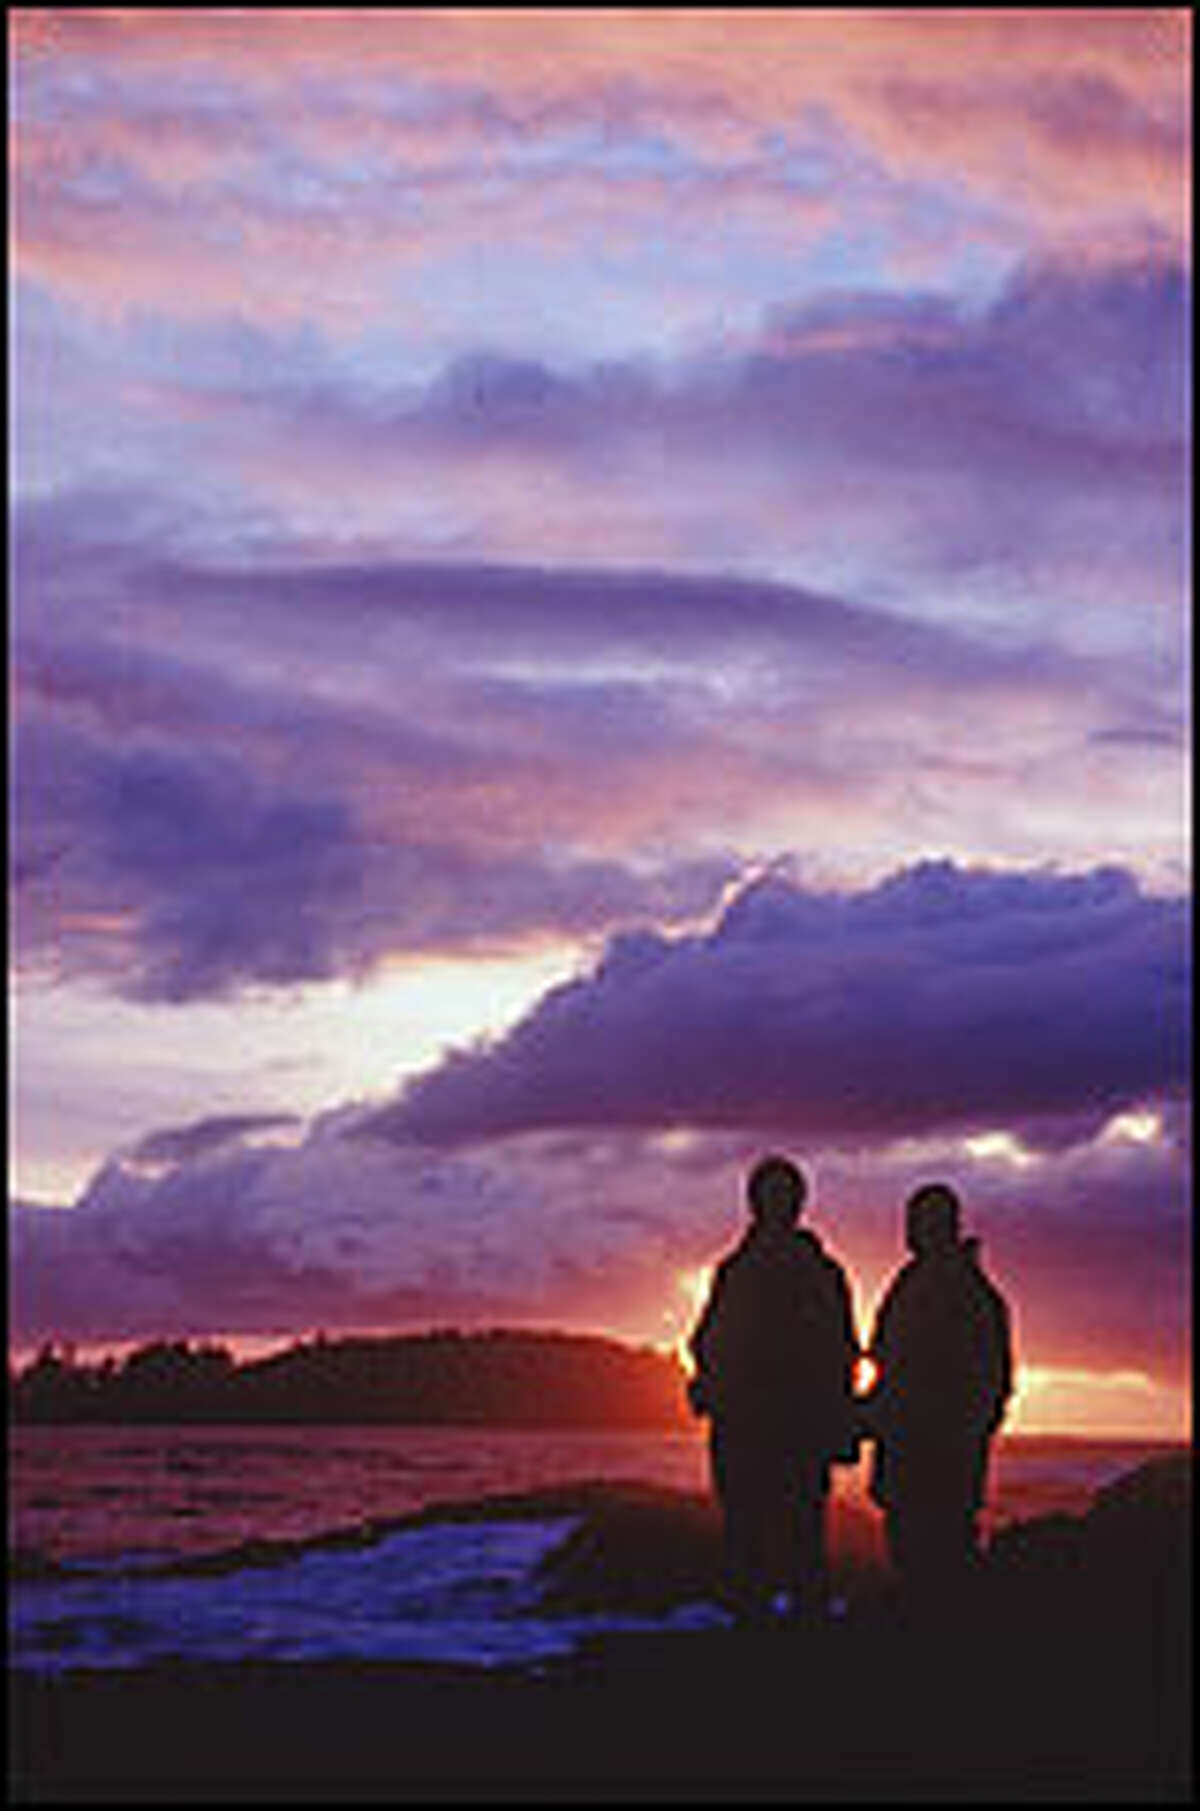 Sunset silhouettes a pair of storm watchers near the Wickaninnish Inn on Vancouver Island's wild west coast.